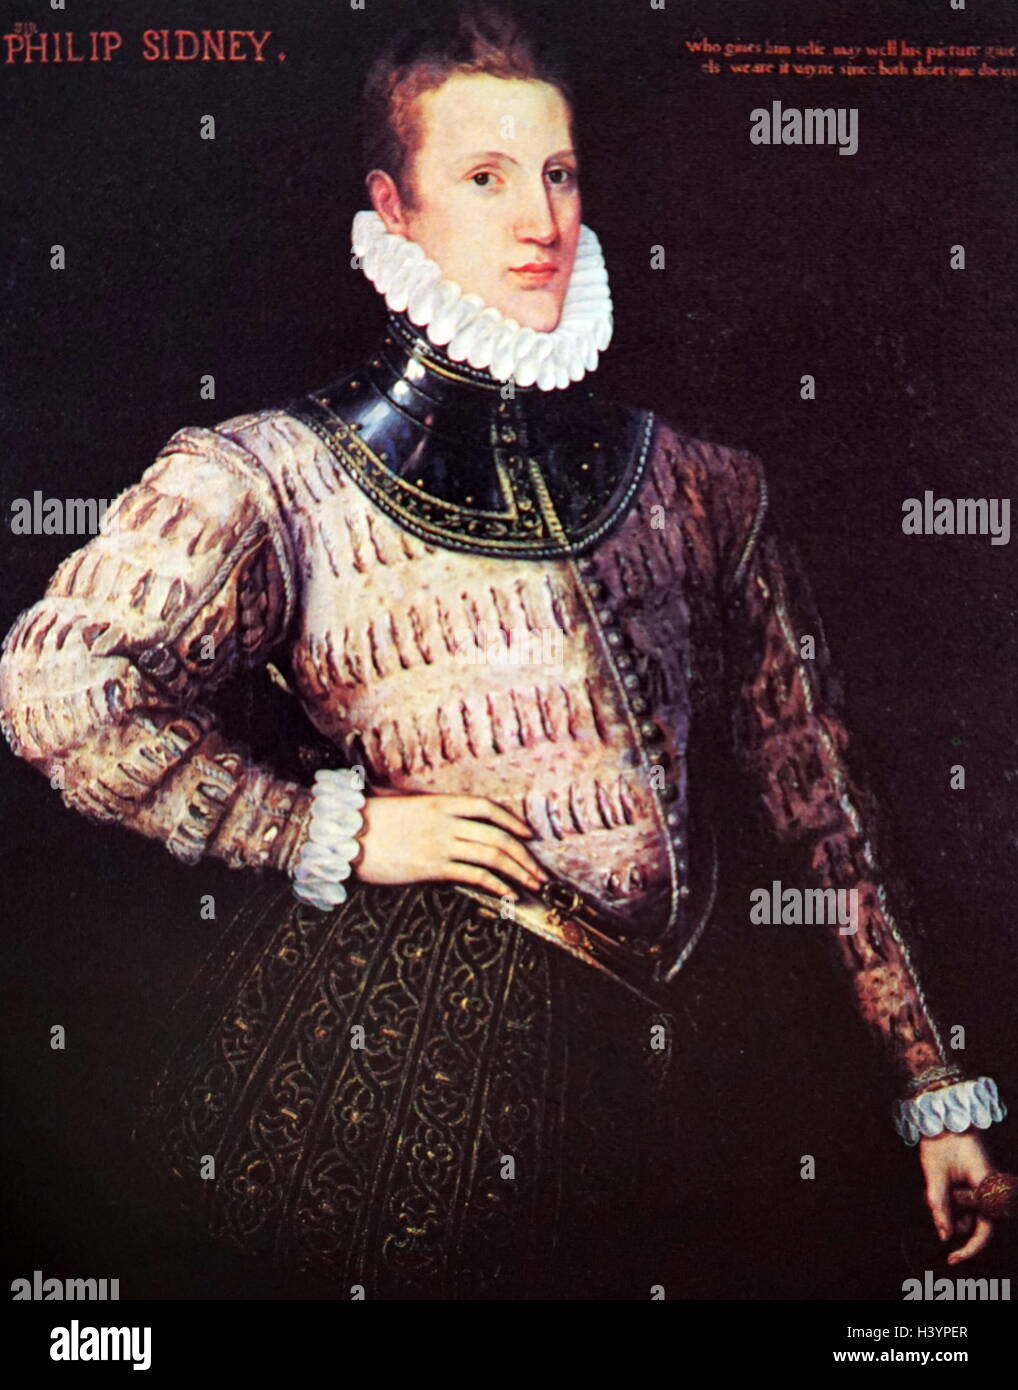 Portrait of Philip Sidney (1554-1586) an English poet, courtier, scholar, and soldier. Dated 16th Century - Stock Image